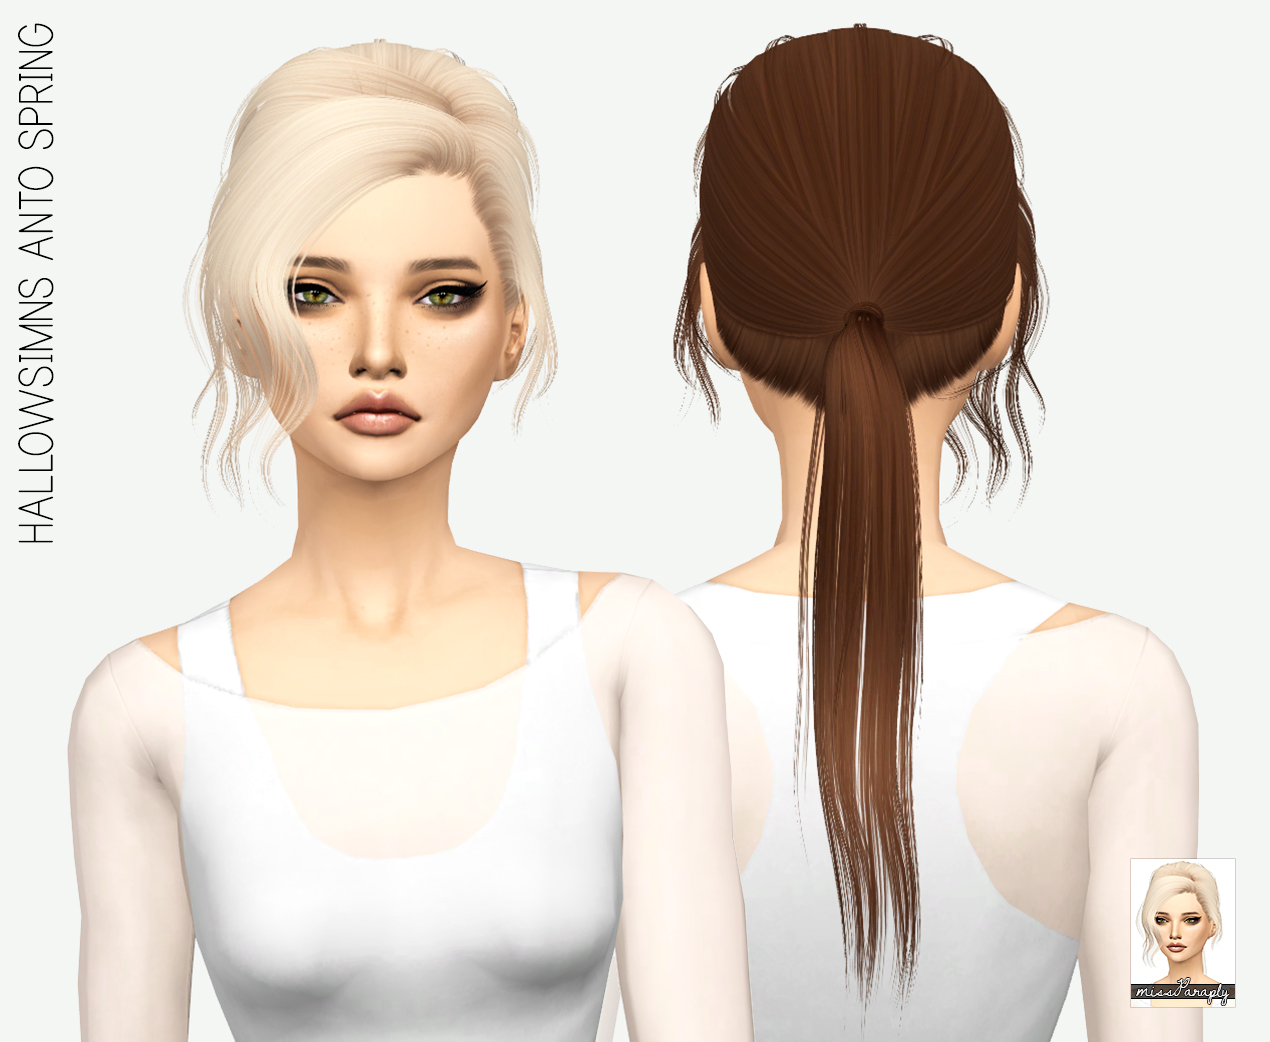 Sims 4 Hairs ~ Miss Paraply: Anto`s Spring hair retextured